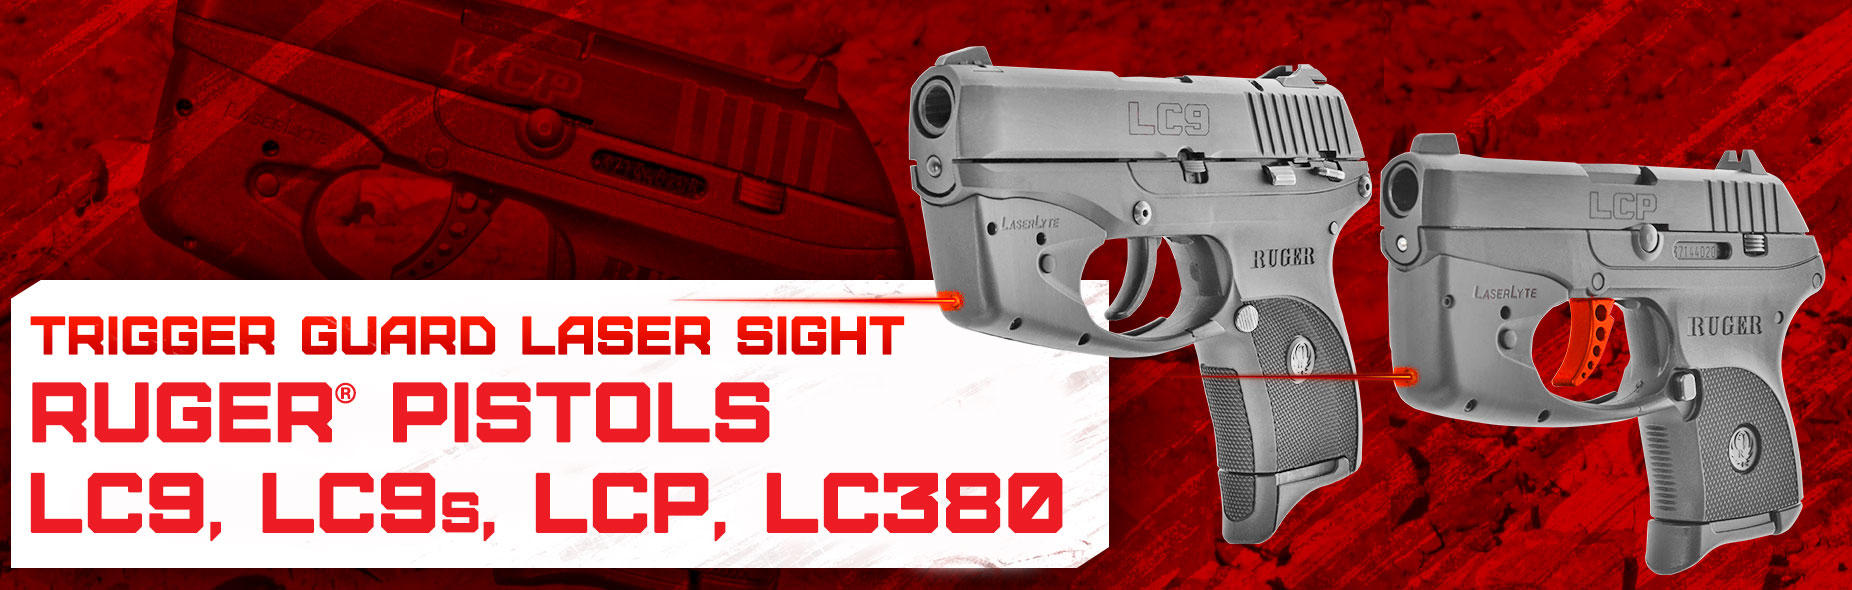 laser gun sight ruger lc9 lc9s lcp lc380 pistol